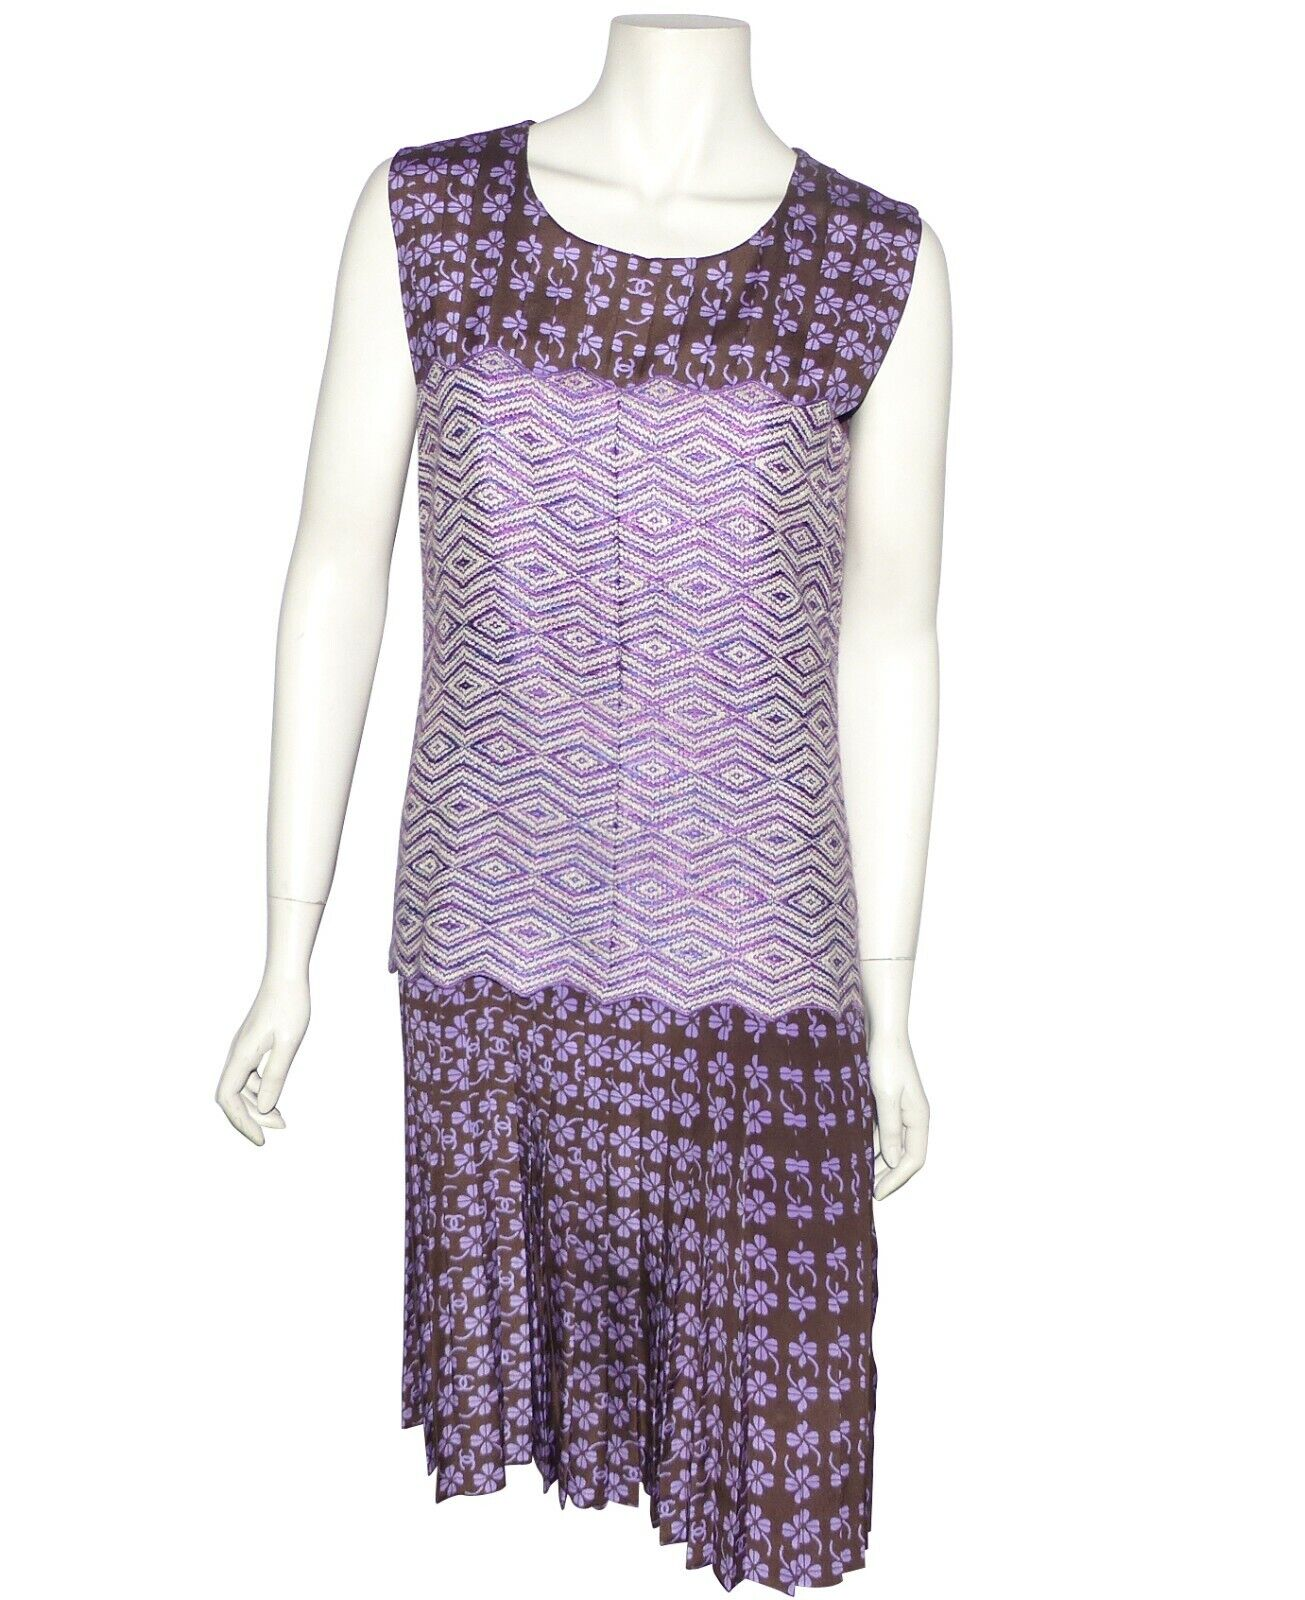 Chanel - robe en bimatiere violette et marron - chanel's dress